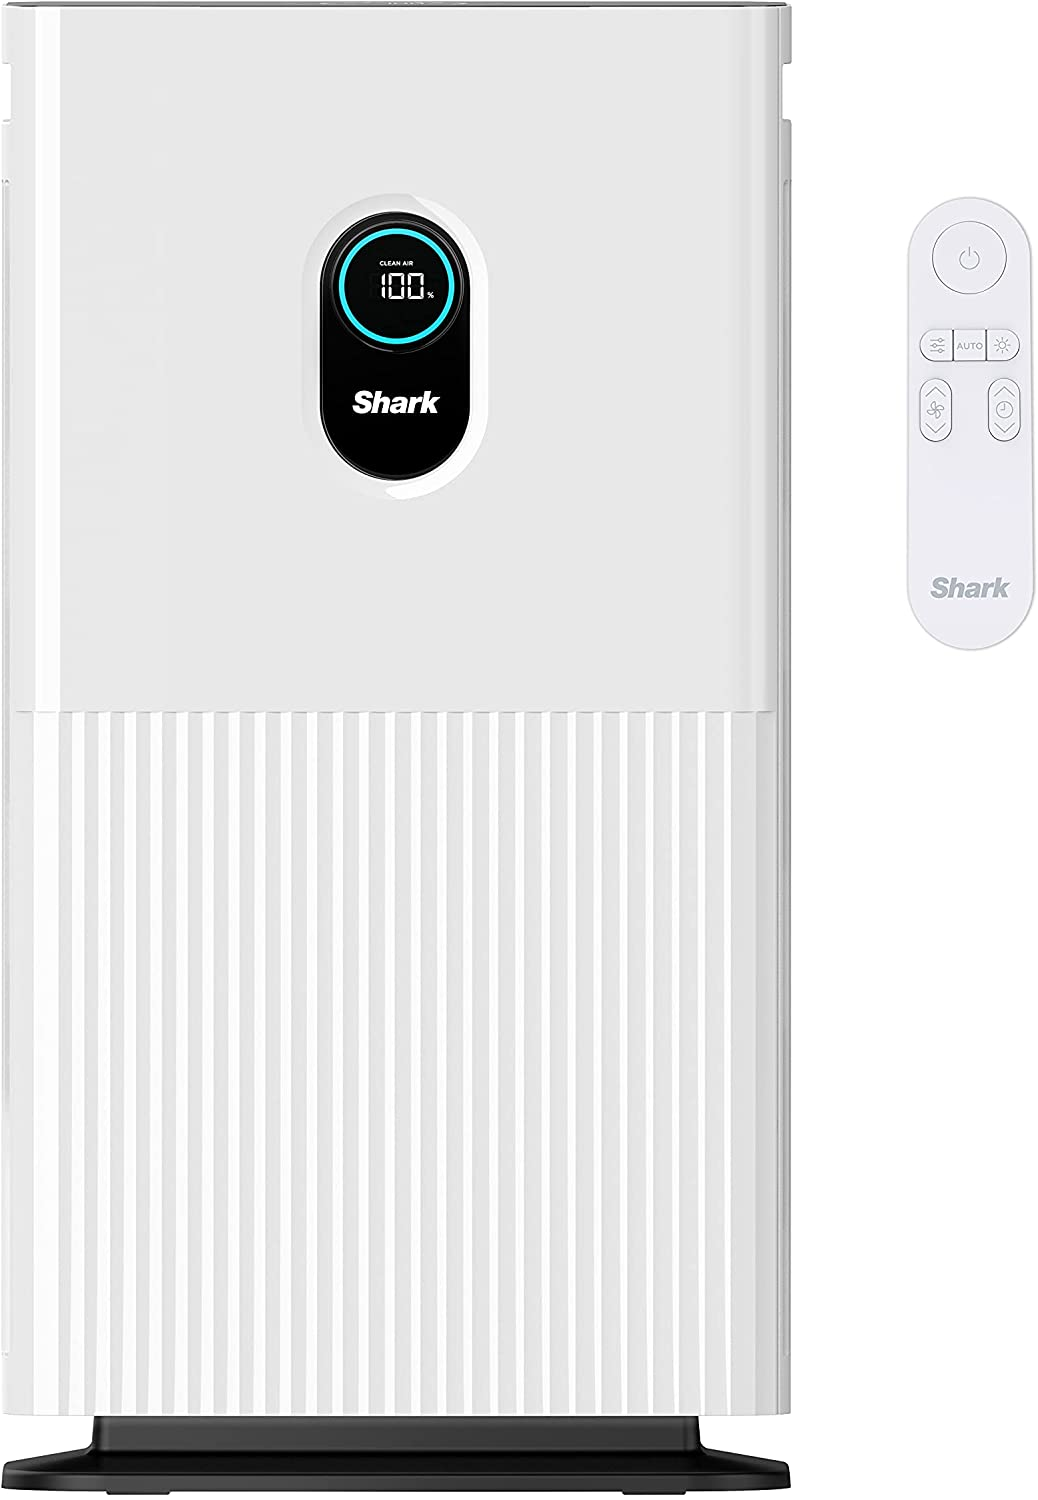 Shark HE601 Air Purifier 6 True Manufacturer regenerated product HEPA up 1200 Covers Square Credence Fe to